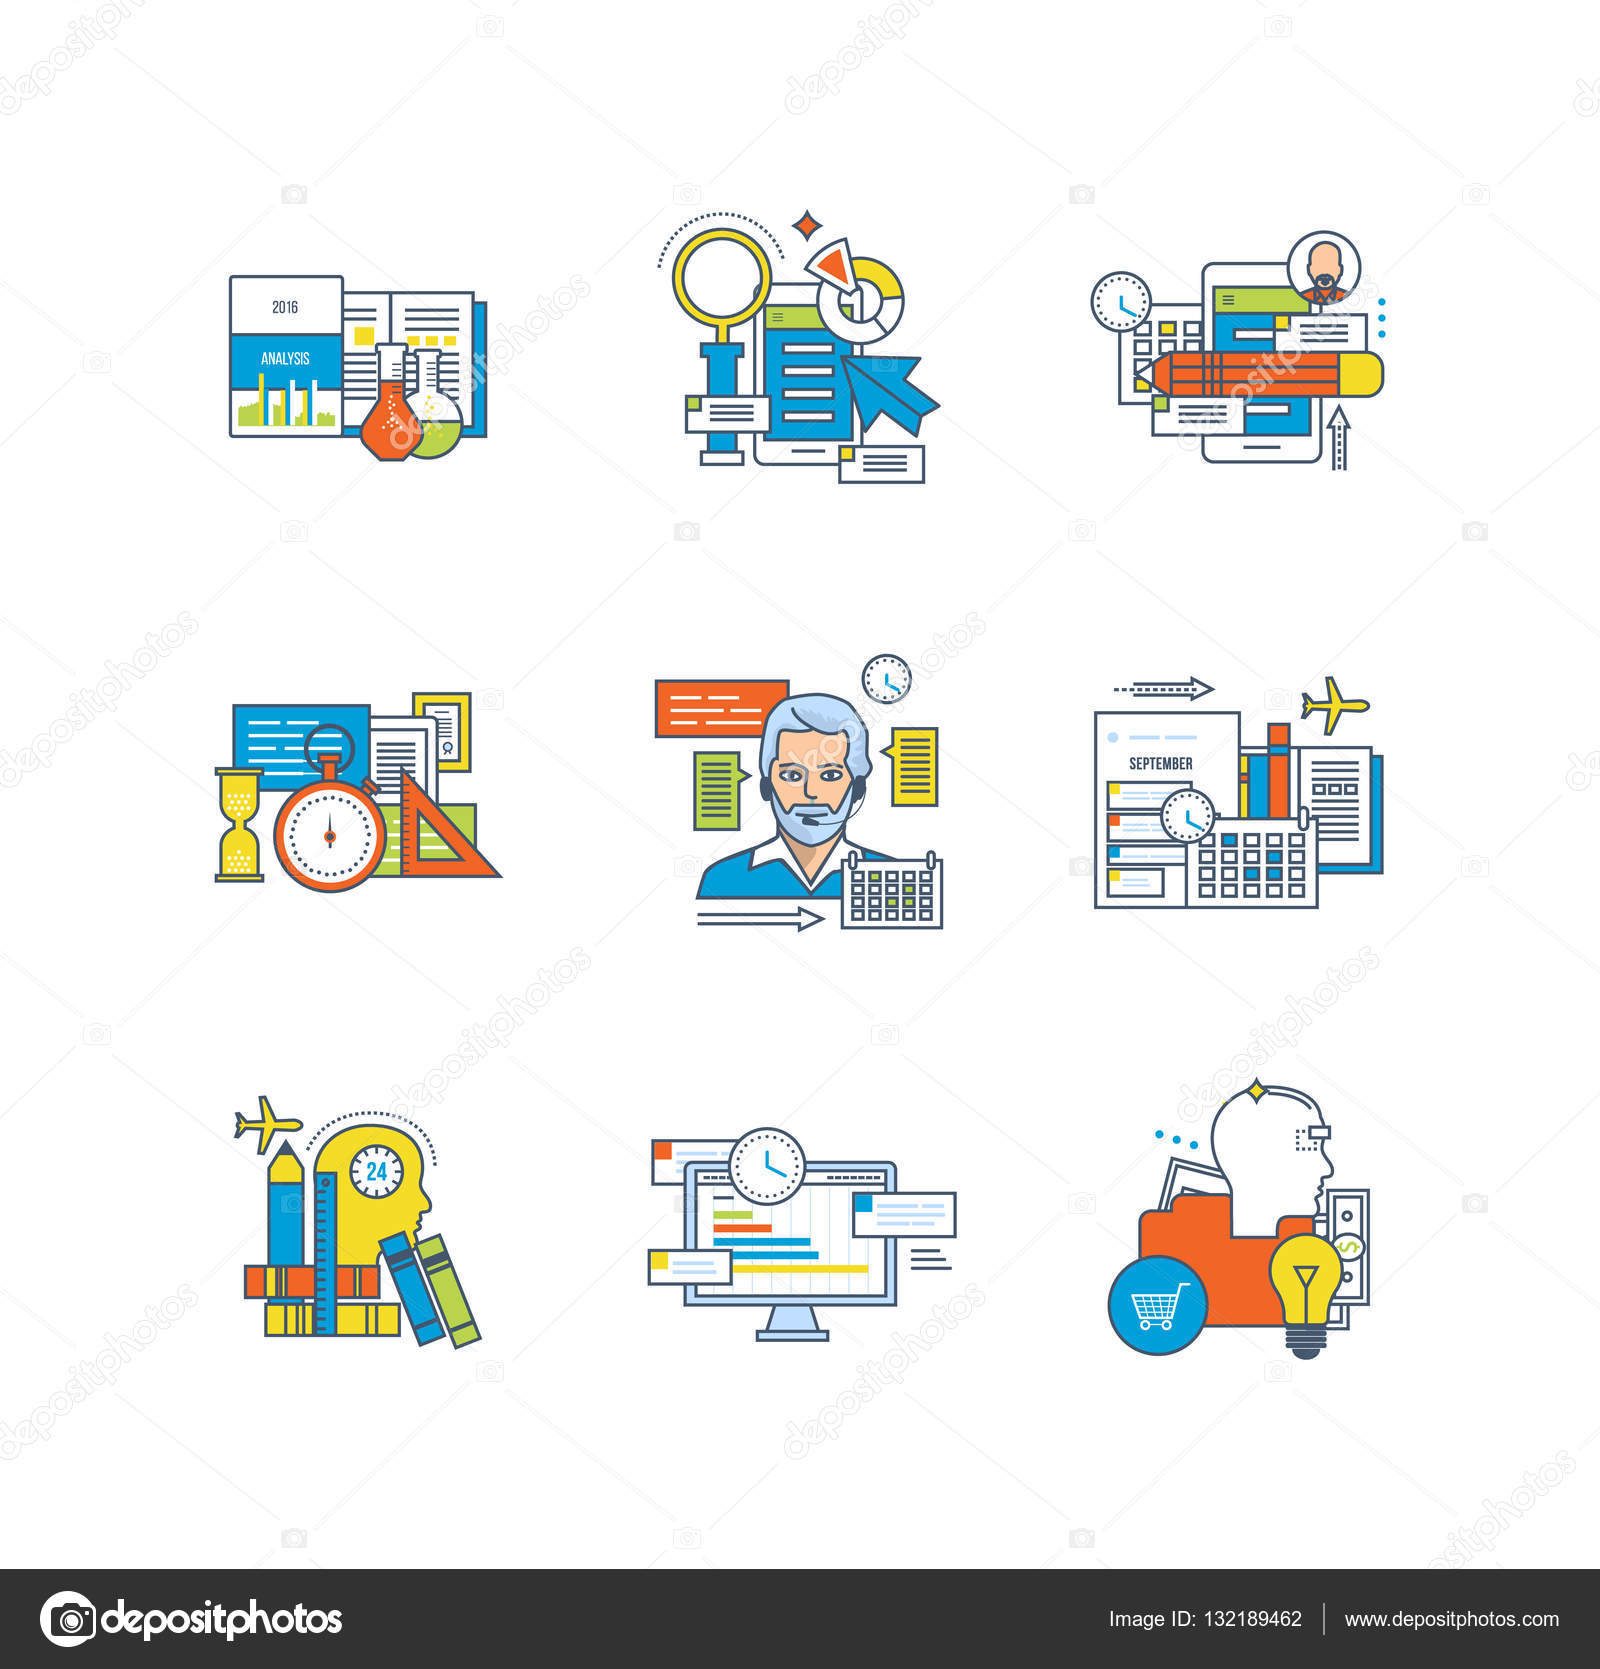 Statistics Education Research Planning Time Management Depositphotos  Stock Illustration Statistics Education Research Planning Time Stock Illustration Statistics Education Research Planning Time